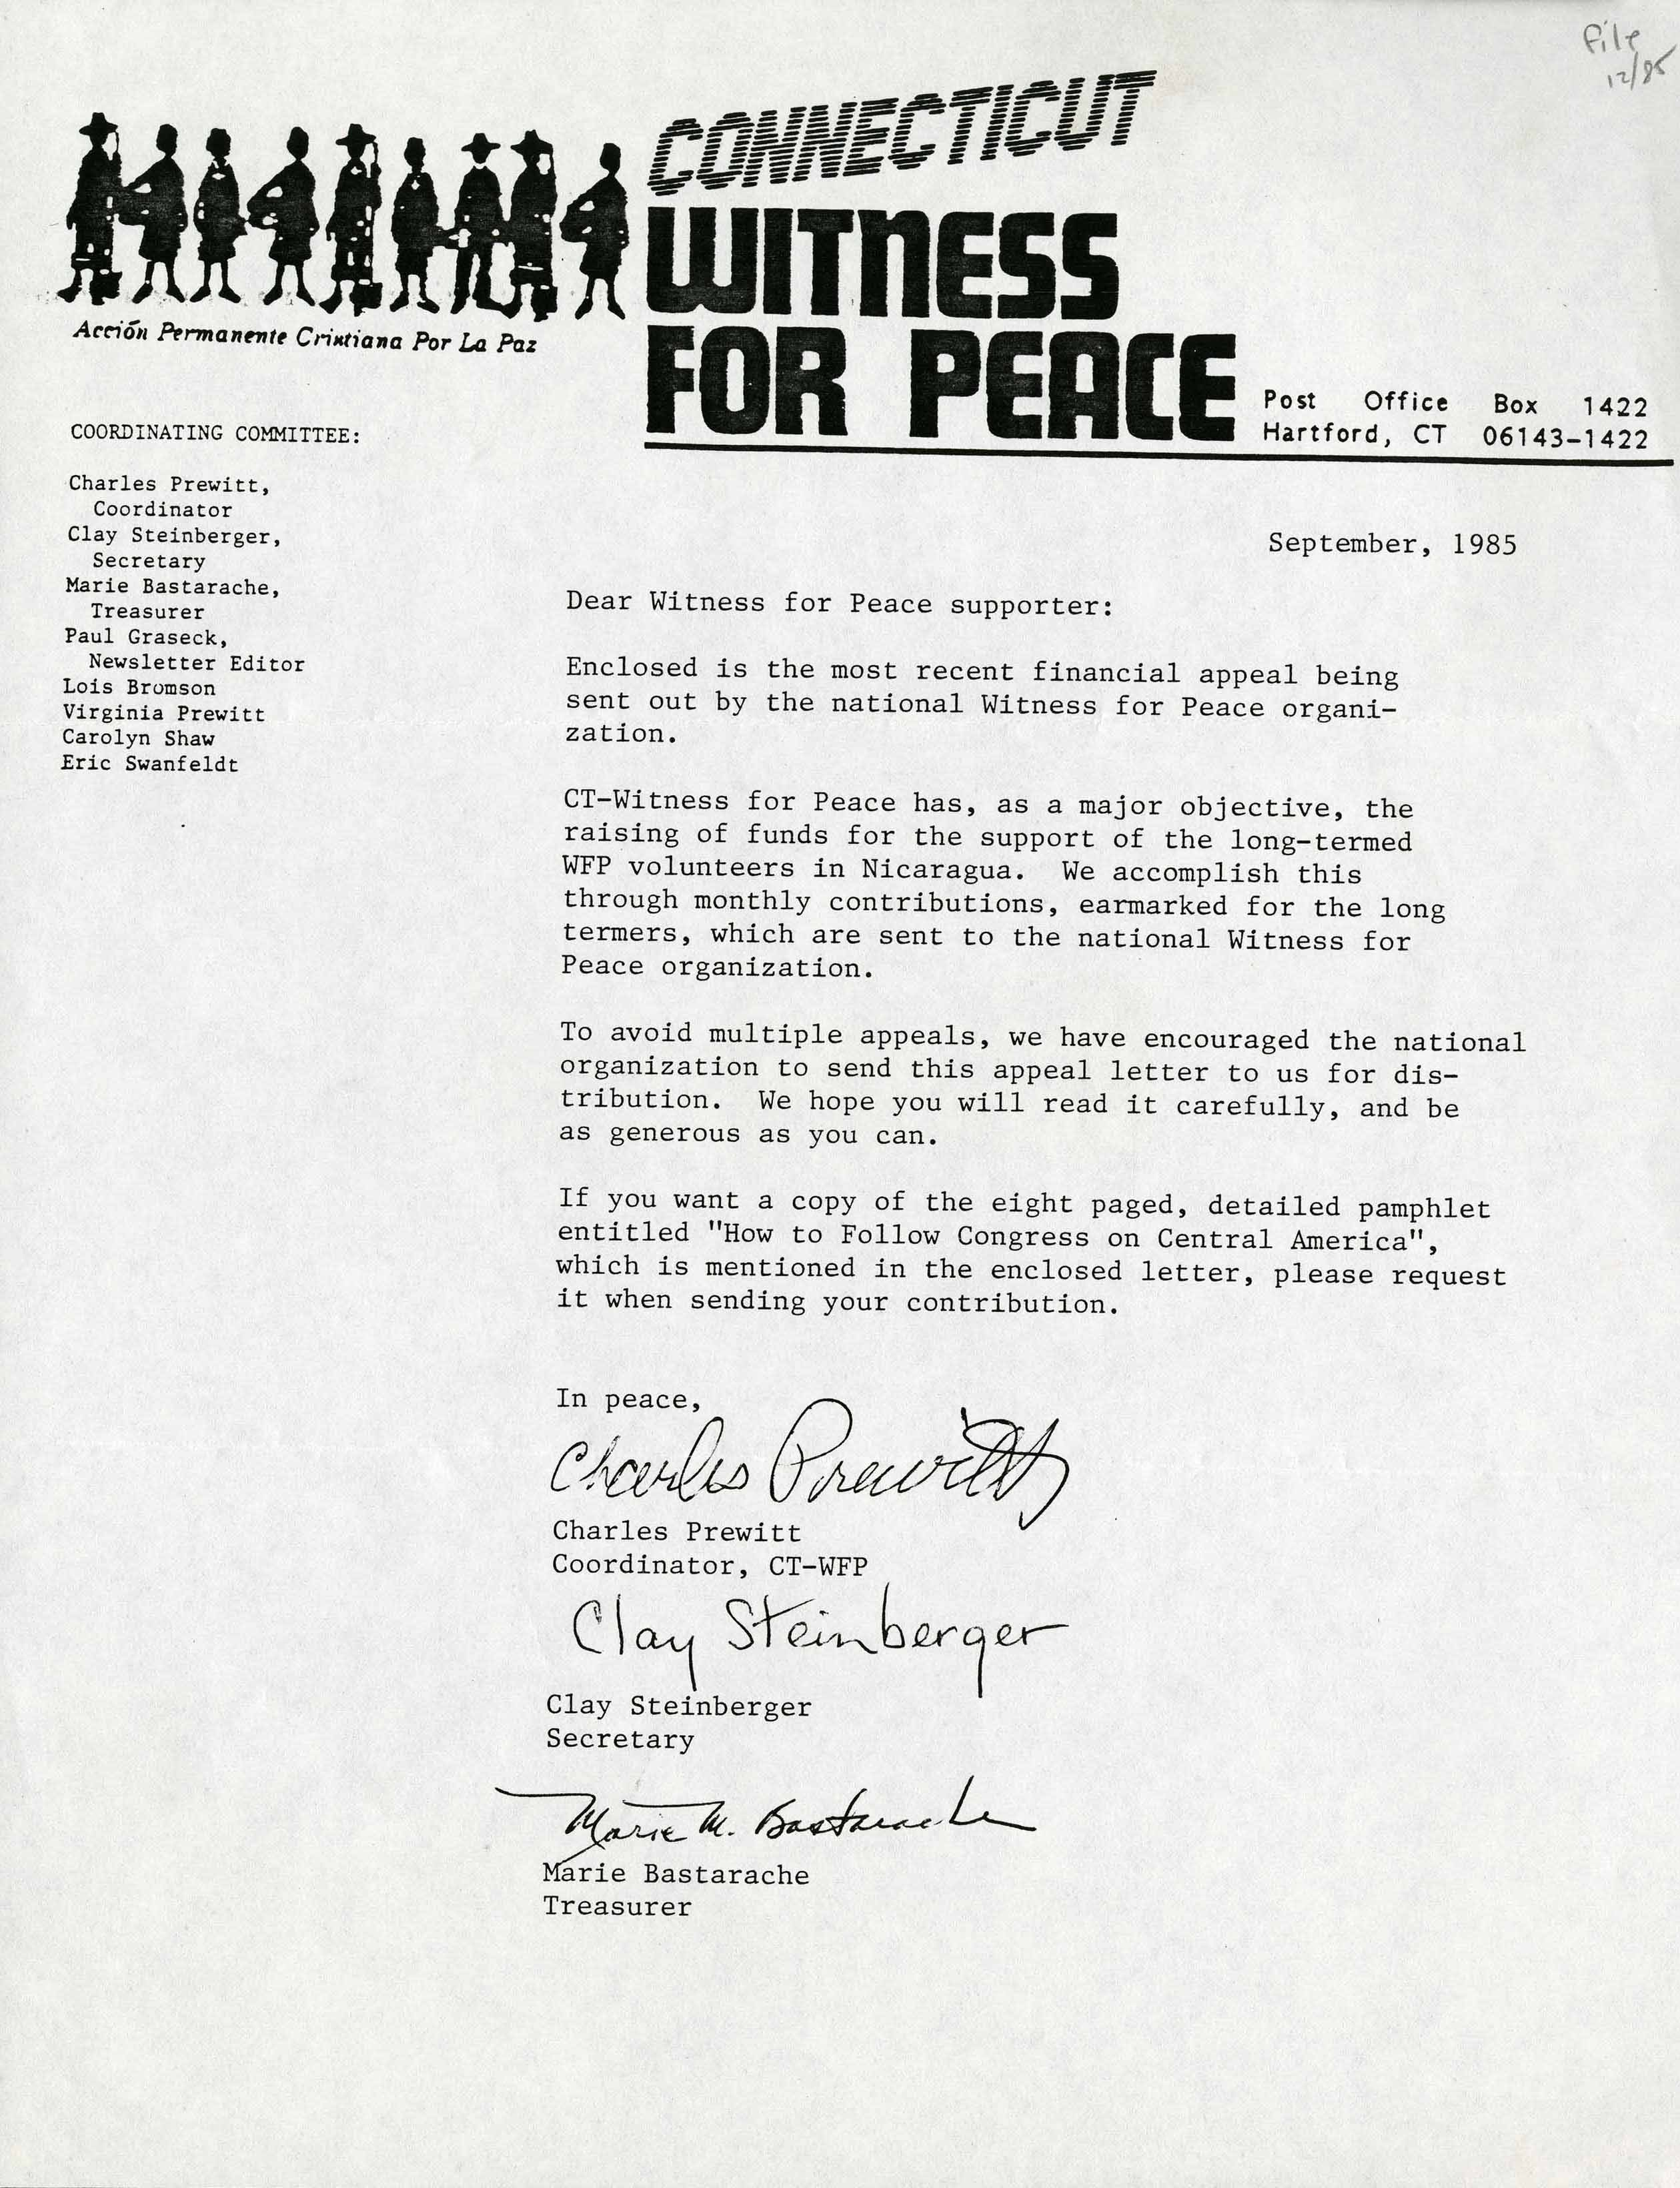 uconn_asc_1992-0001_CT-witness-for-peace_1985_001